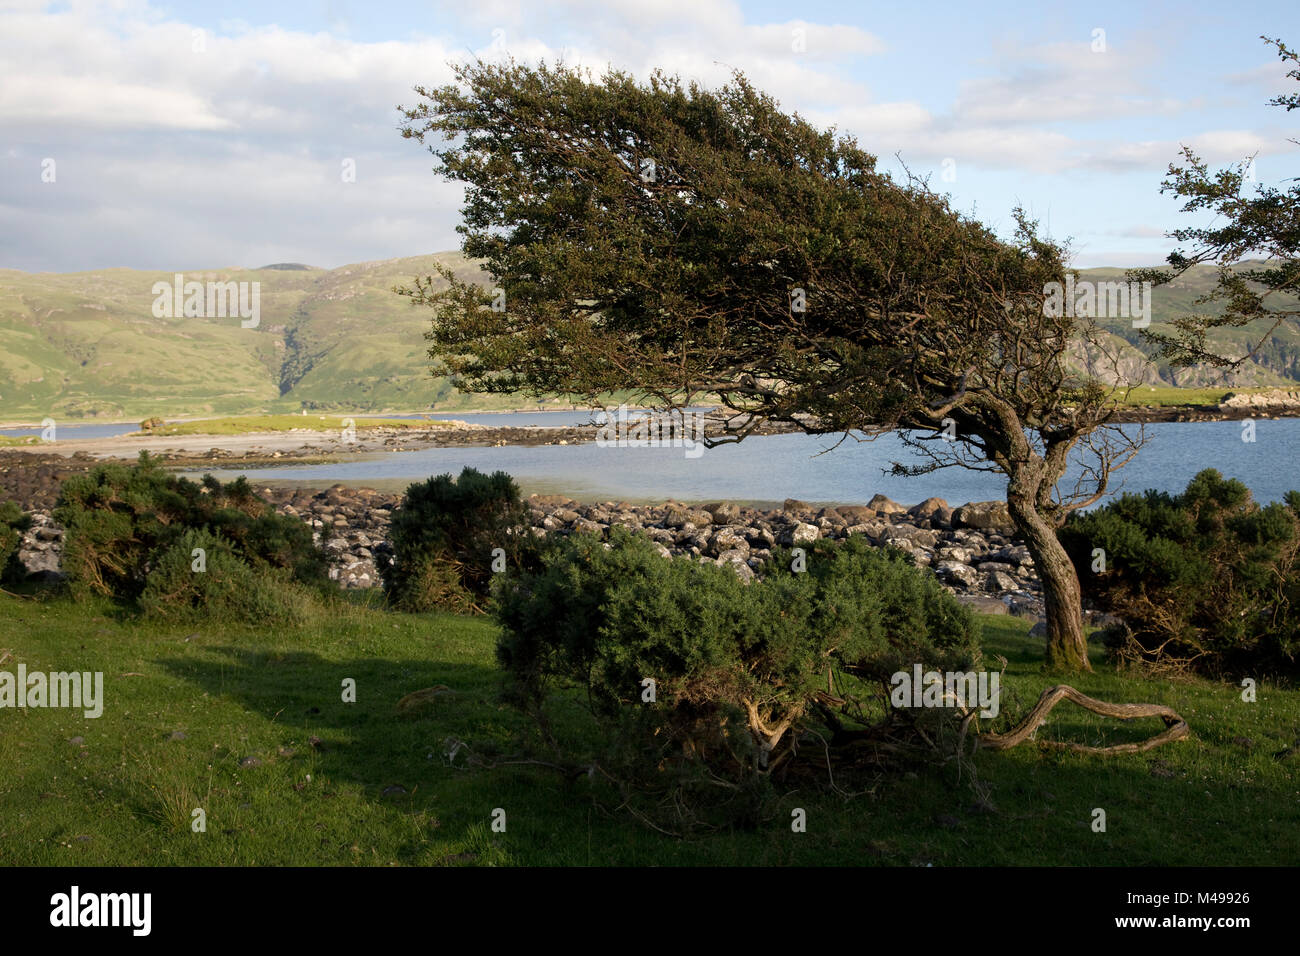 Hawthorn tree bent by prevailing wind Scotland UK - Stock Image